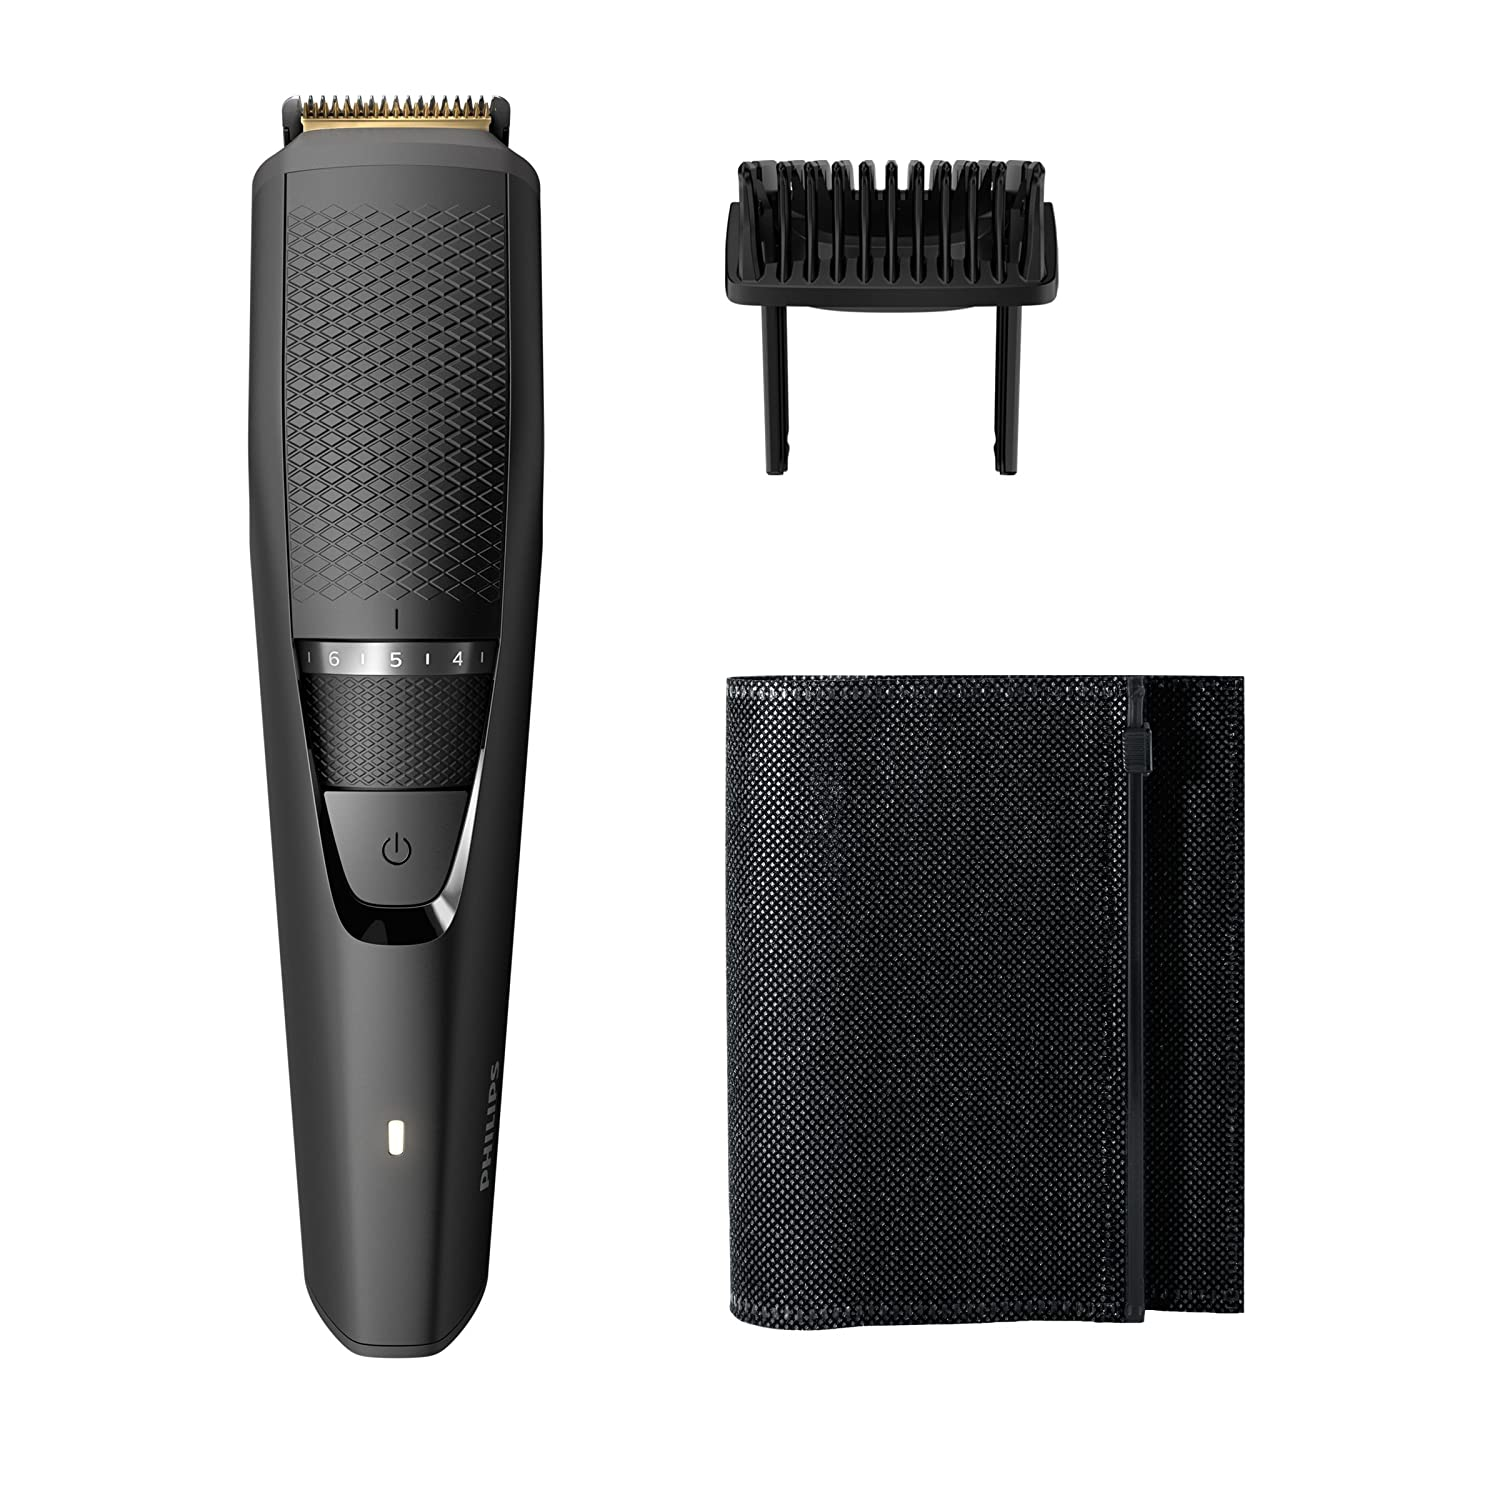 Best trimmer for men under 1500 rupees in India